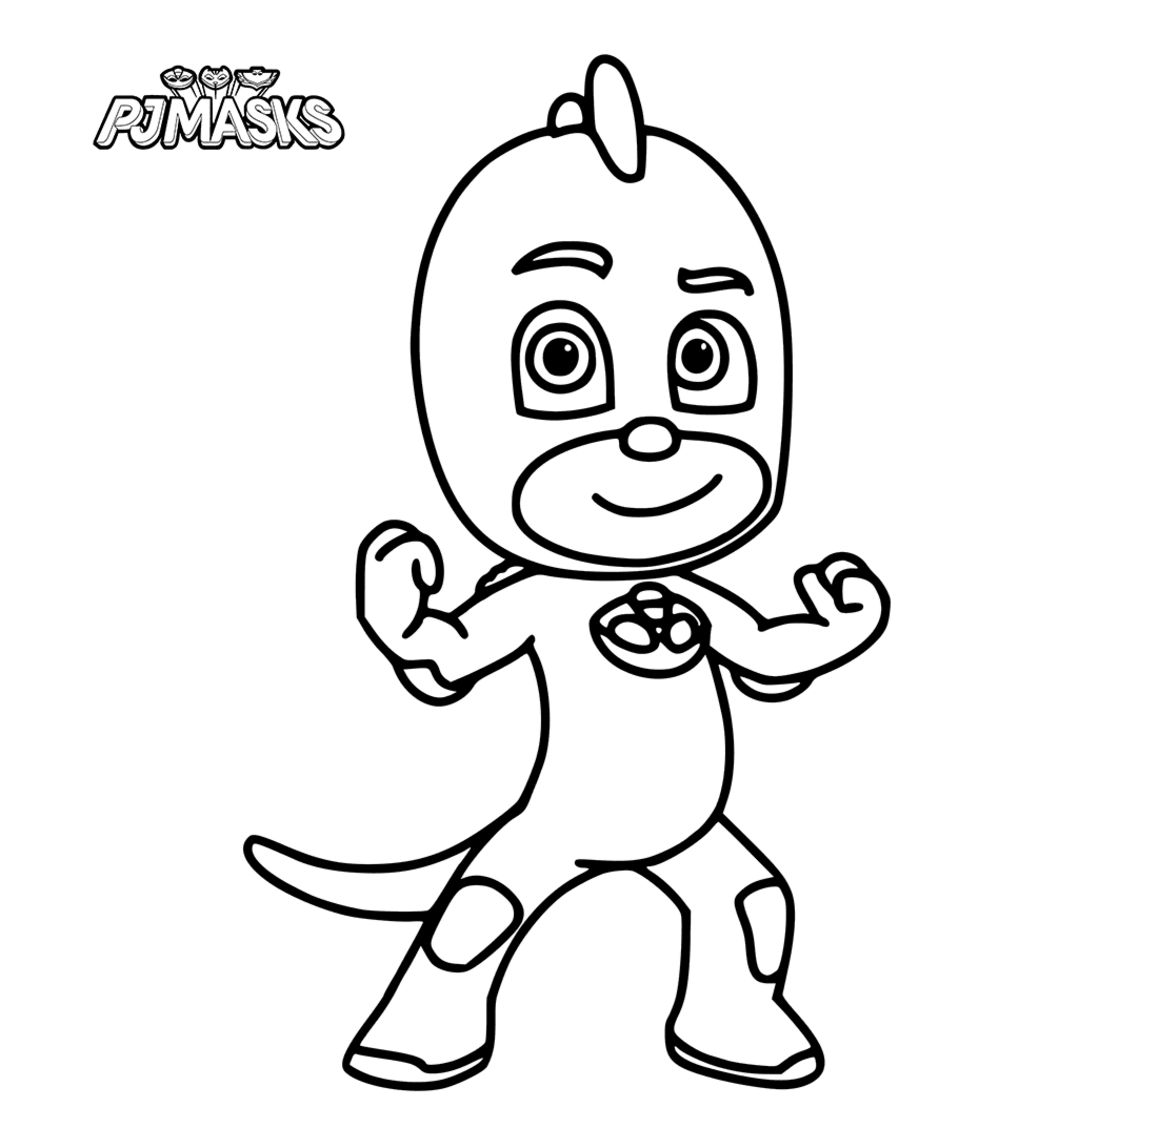 Disney pj masks coloring sheets - Finding Dory Coloring Pages Coloring Pages To Download And Print For Free Pj Masks Coloring Page